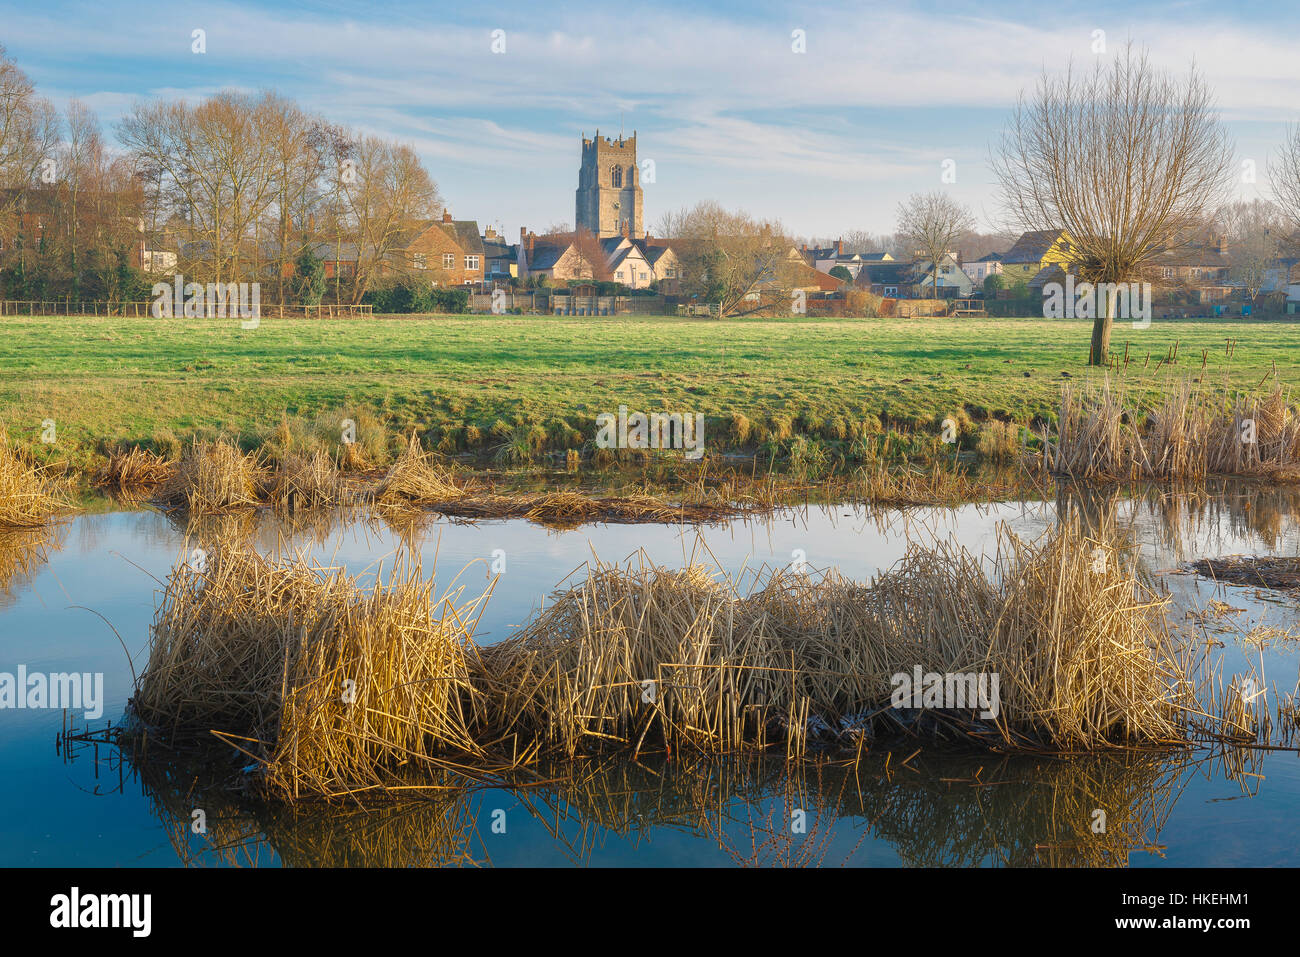 Suffolk landscape, a stretch of the River Stour in winter with the Suffolk town of Sudbury in the distance, Babergh - Stock Image